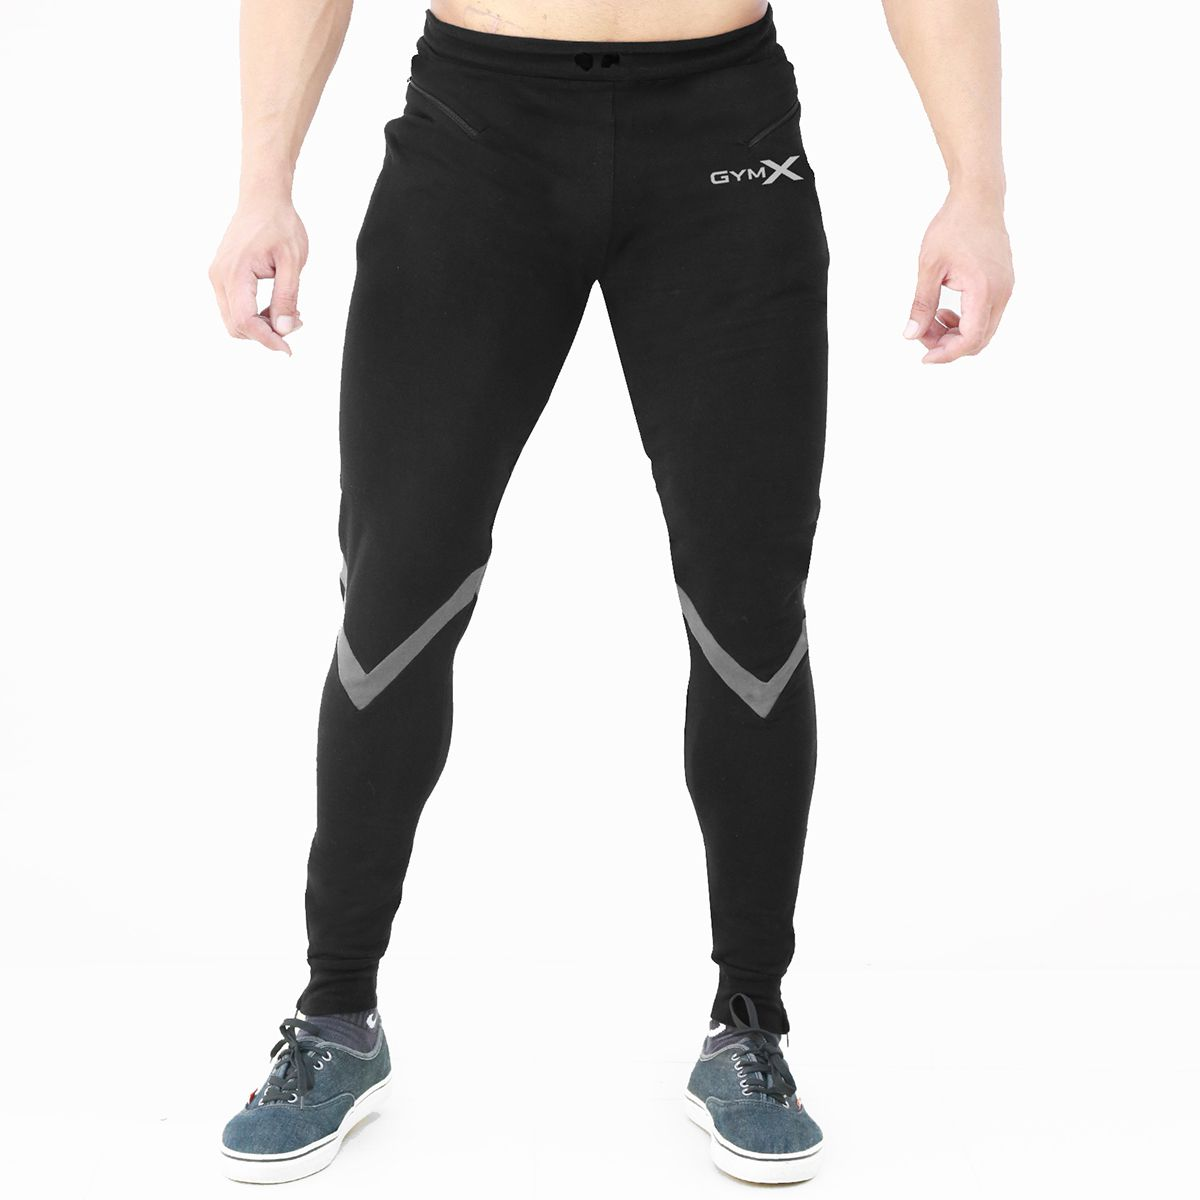 GymX Mens Valour Iconic Black Sweatpants (Flex Fit)